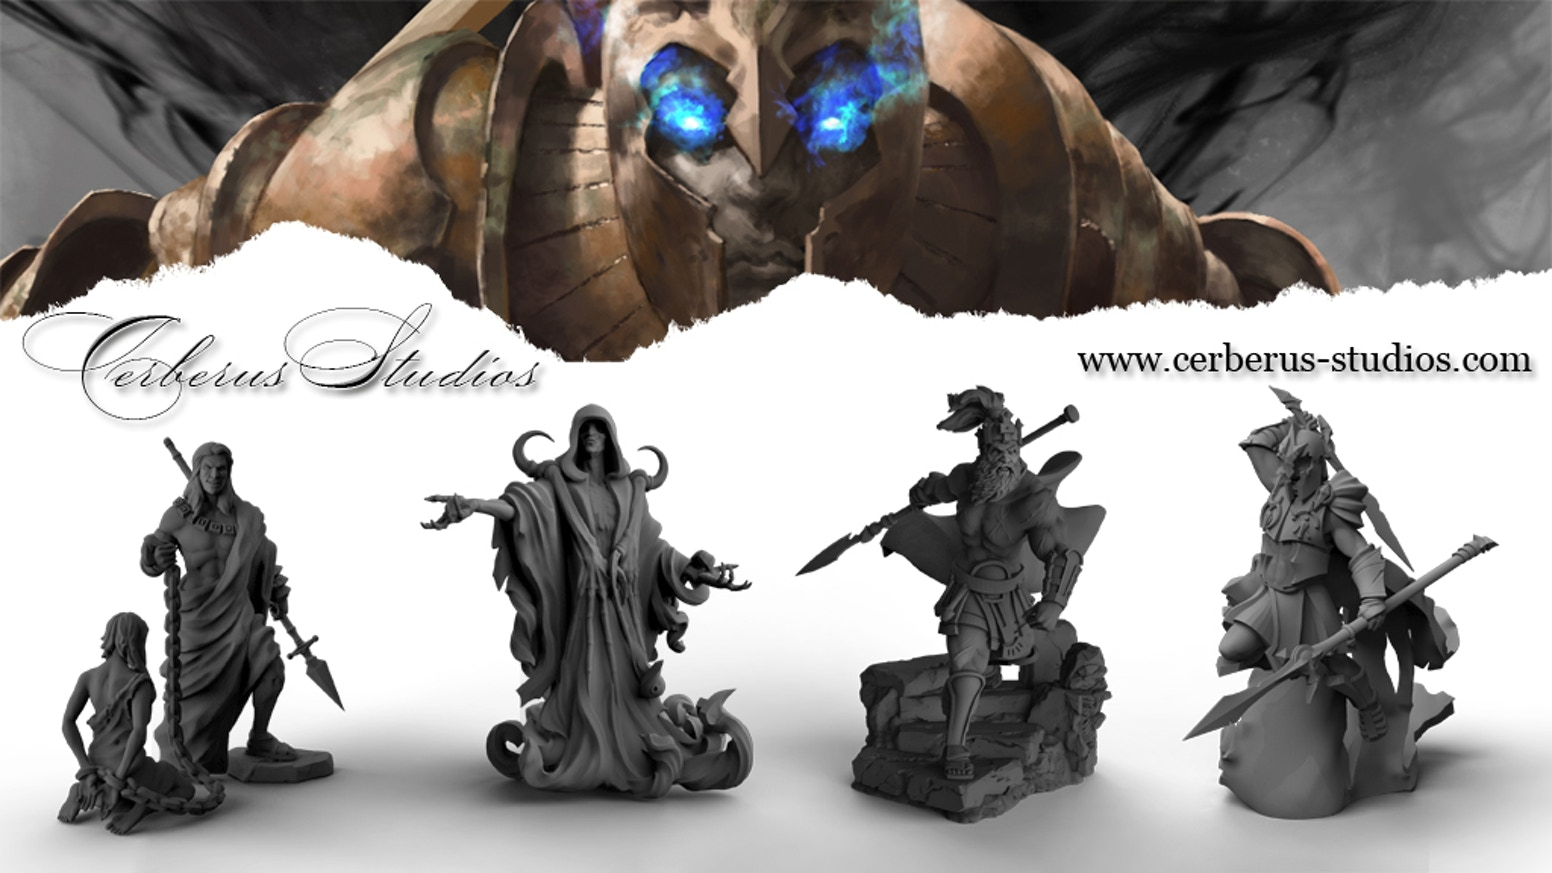 Cerberus Studios - 32mm High Quality Resin Fantasy Miniatures. A new world and characters to explore.